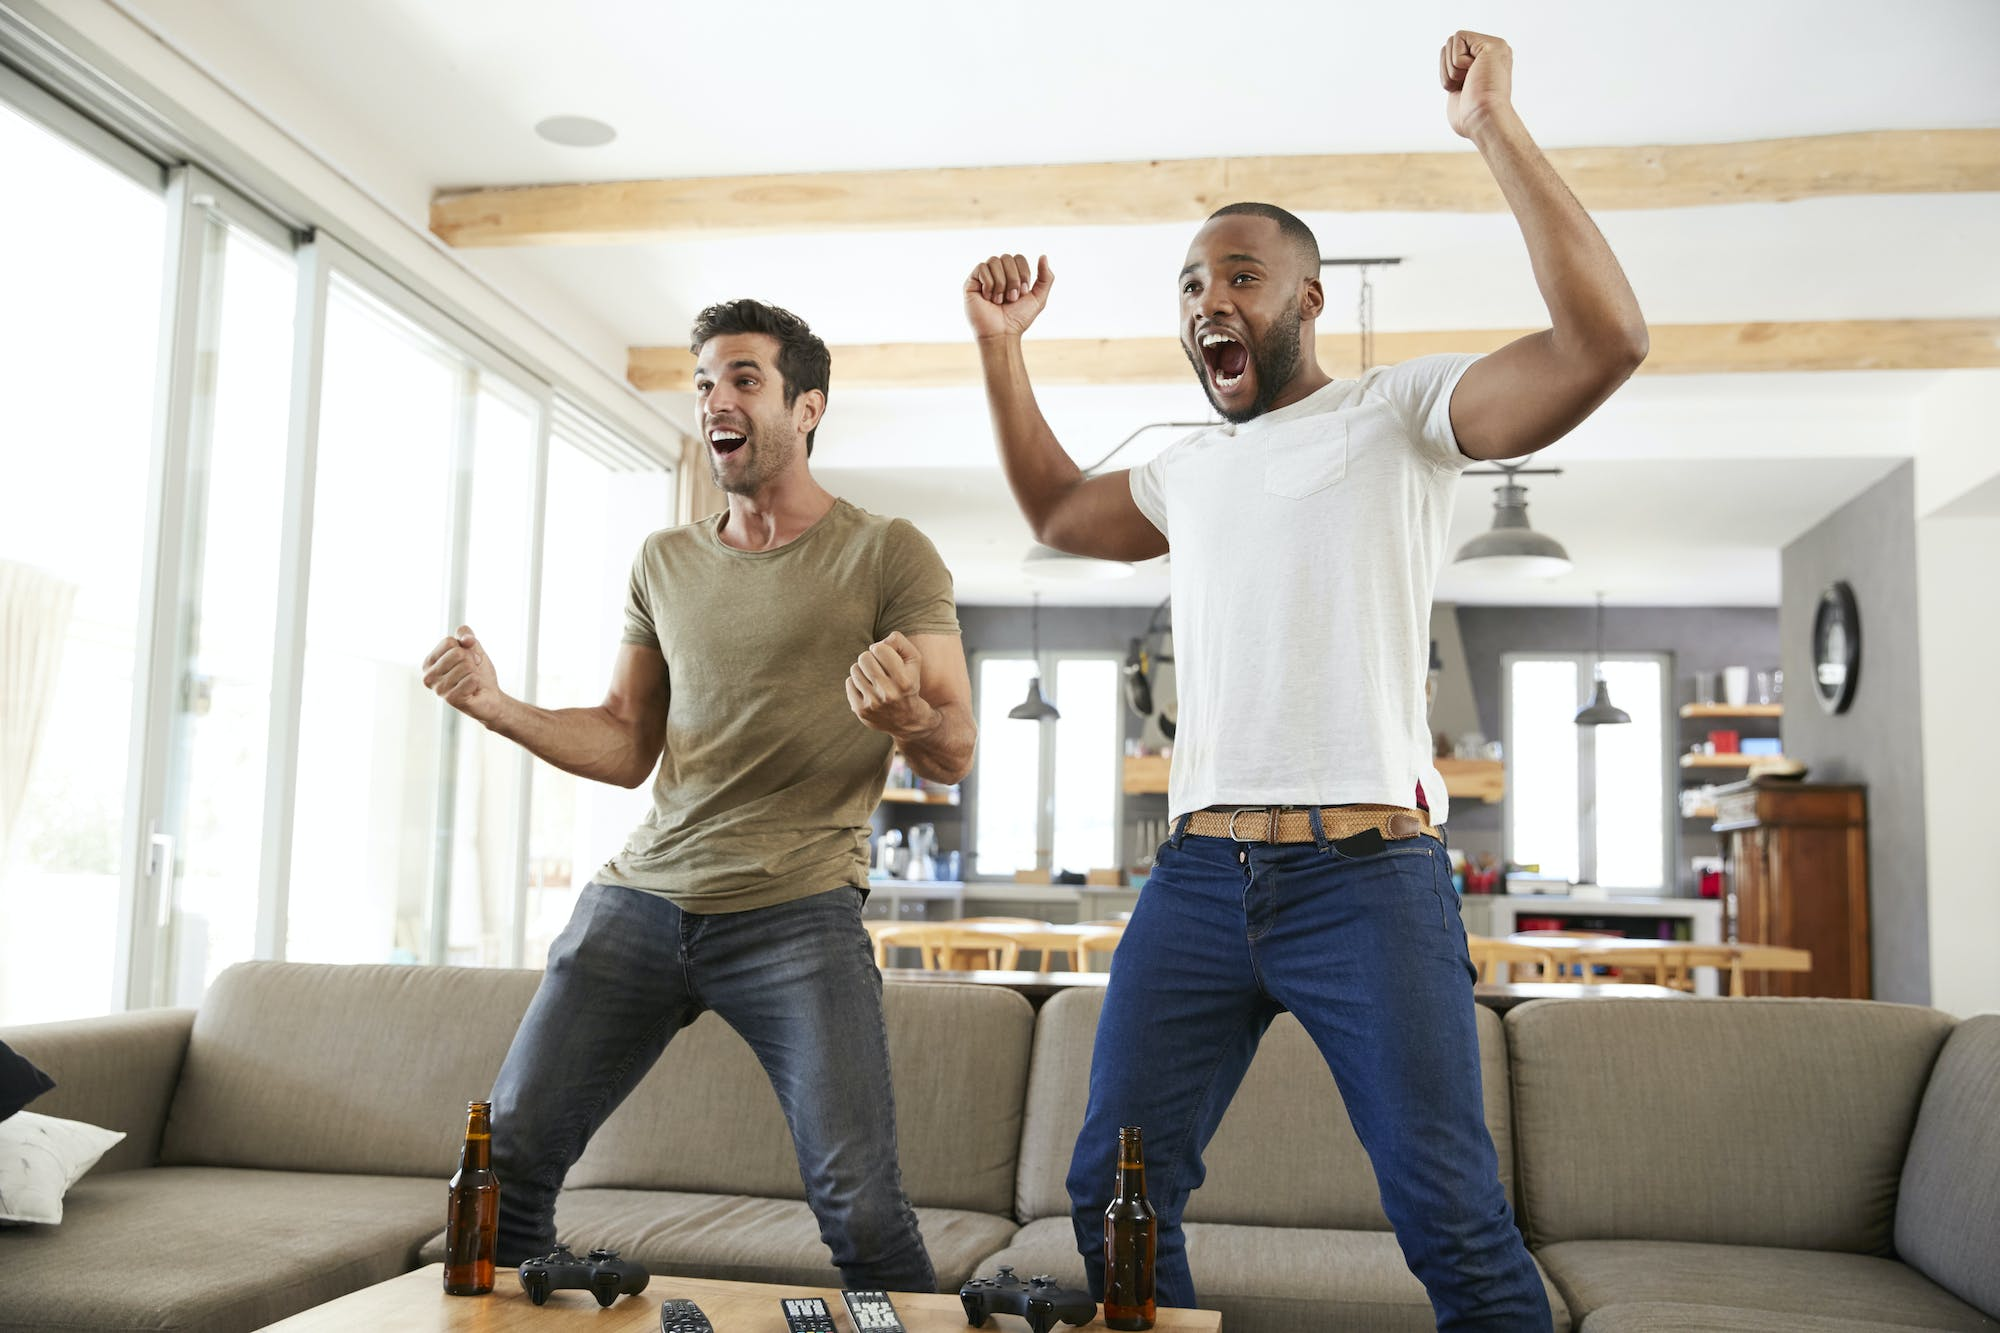 Two excited male friends celebrate watching sports pt5dfkl.jpg?ixlib=rails 2.1